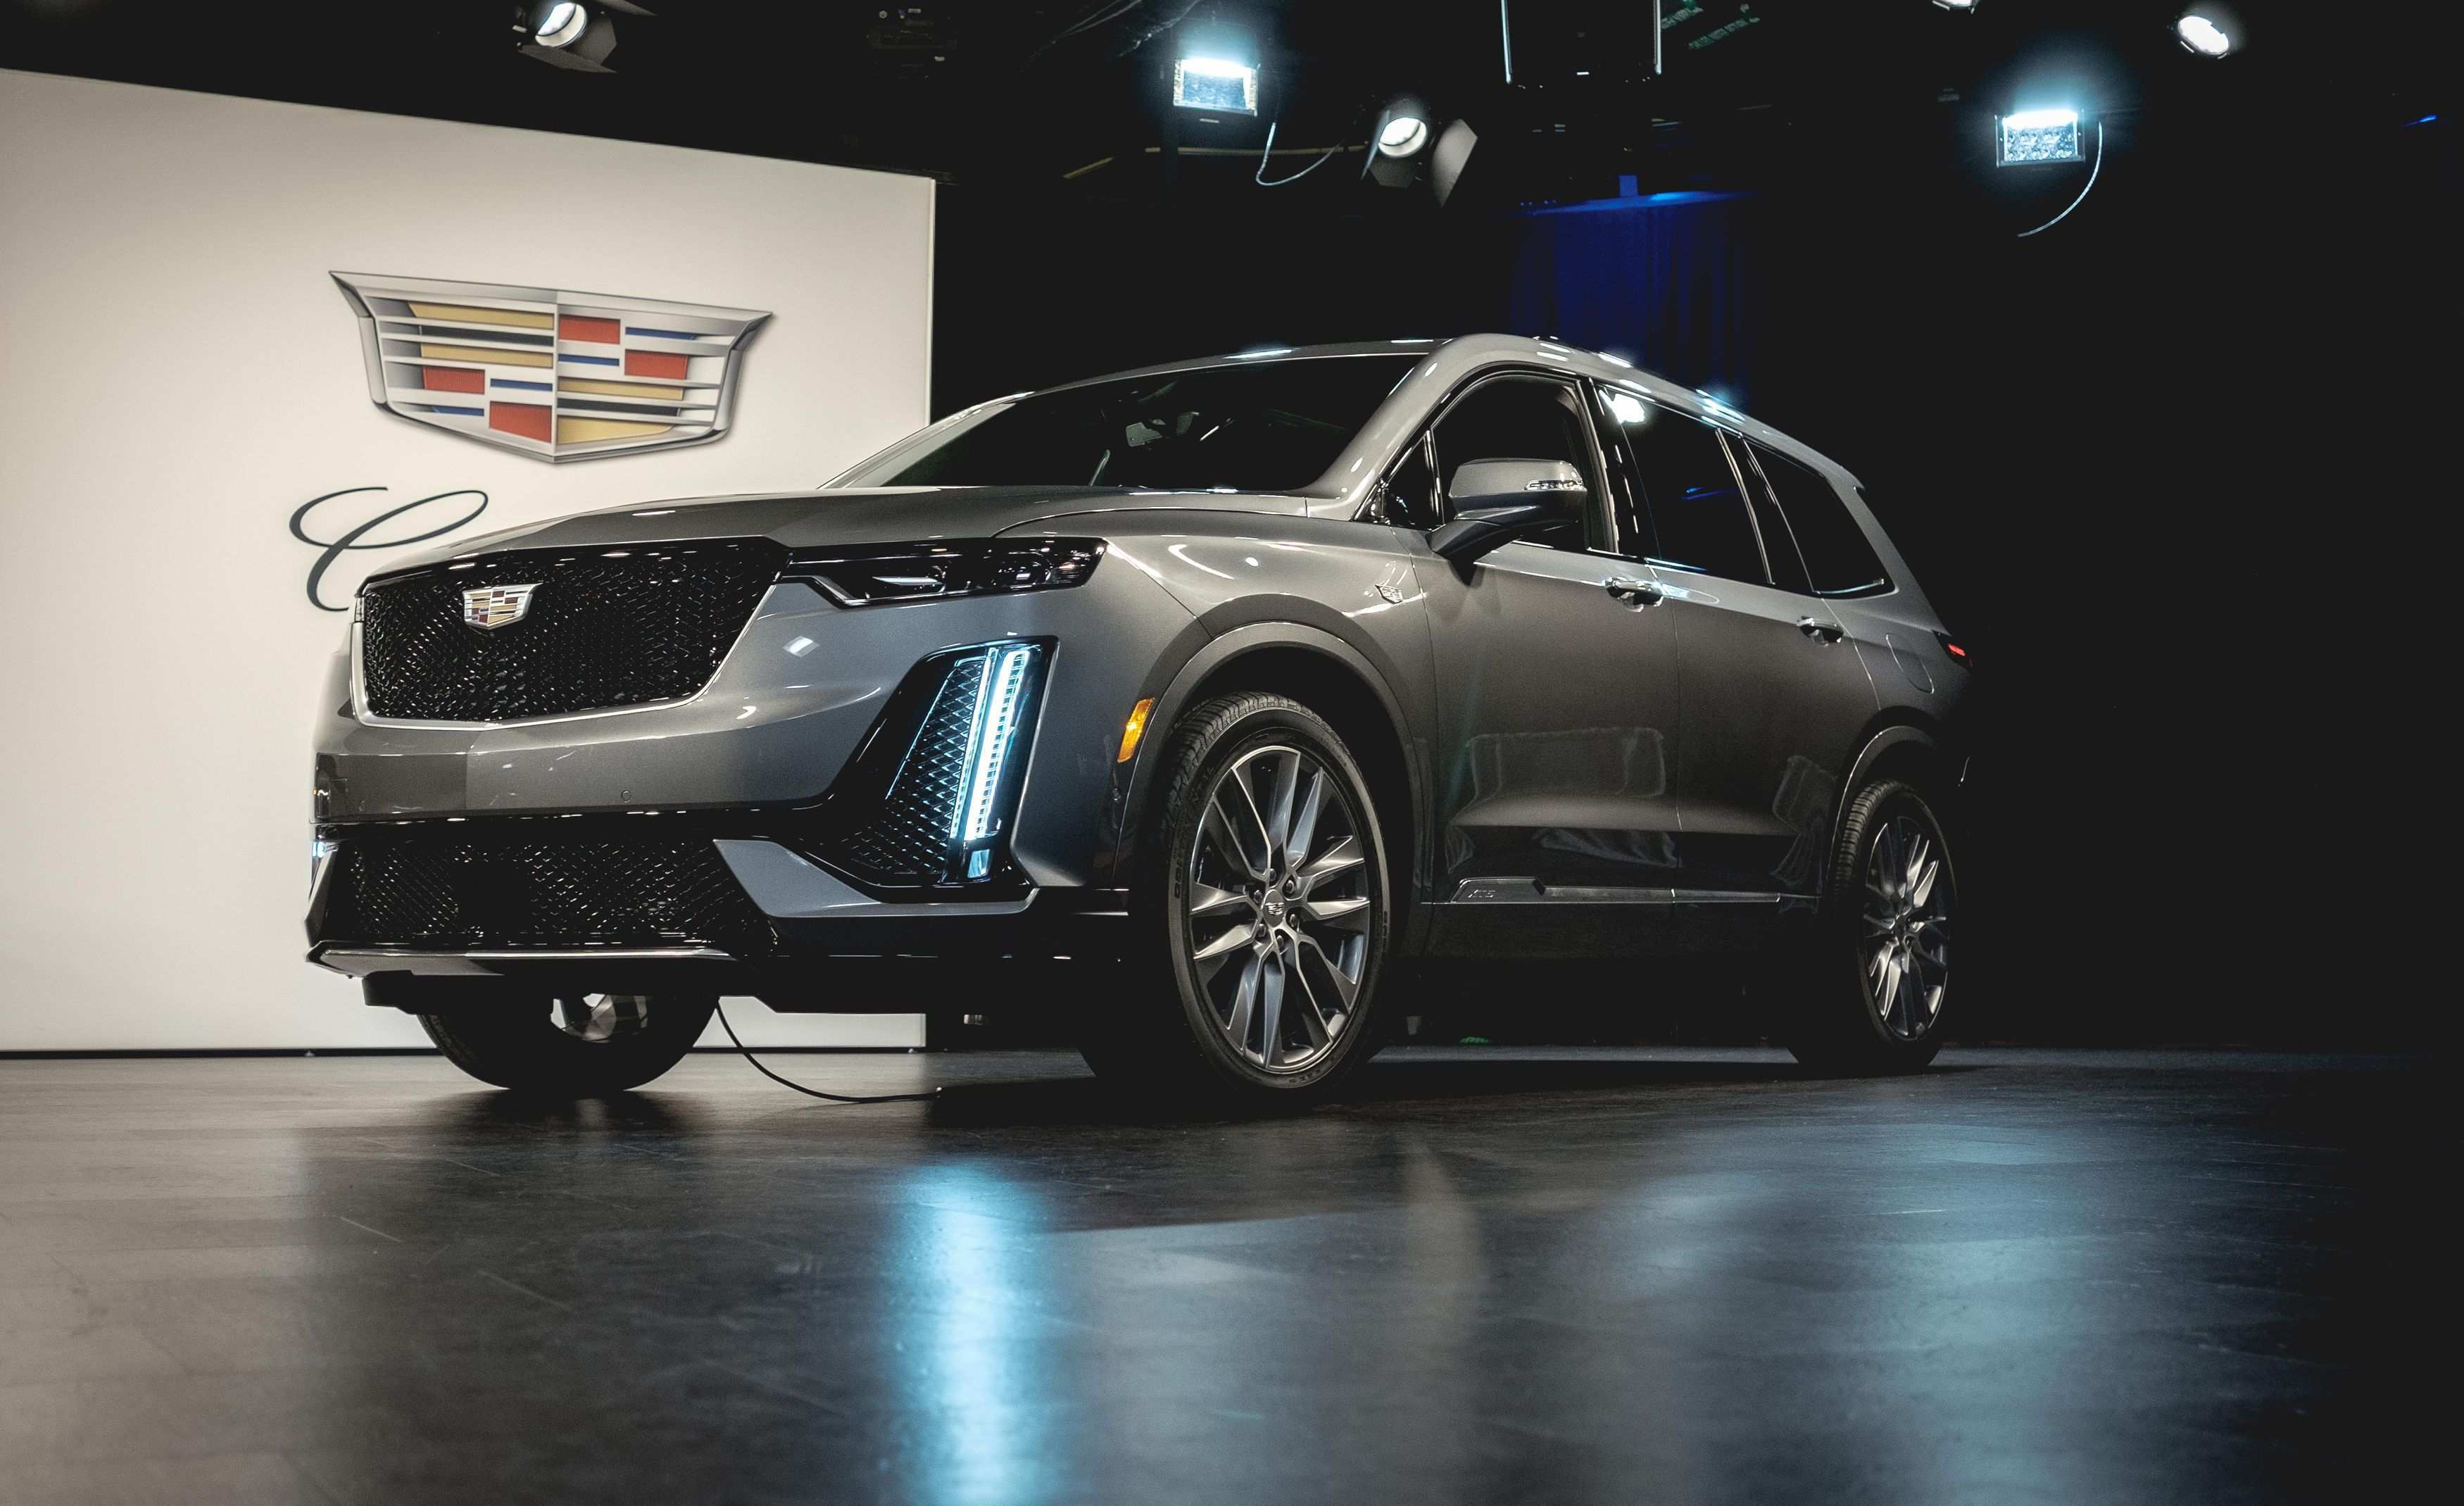 79 The Best 2020 Cadillac Escalade Youtube Pricing